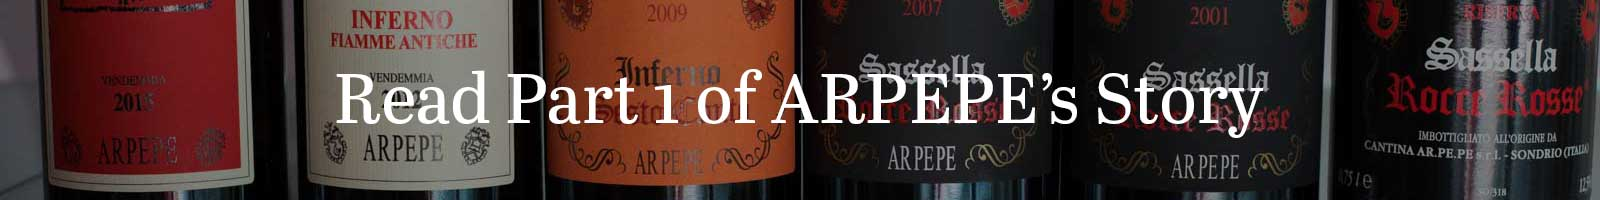 Part 1 of ARPEPE's story on Opening a Bottle